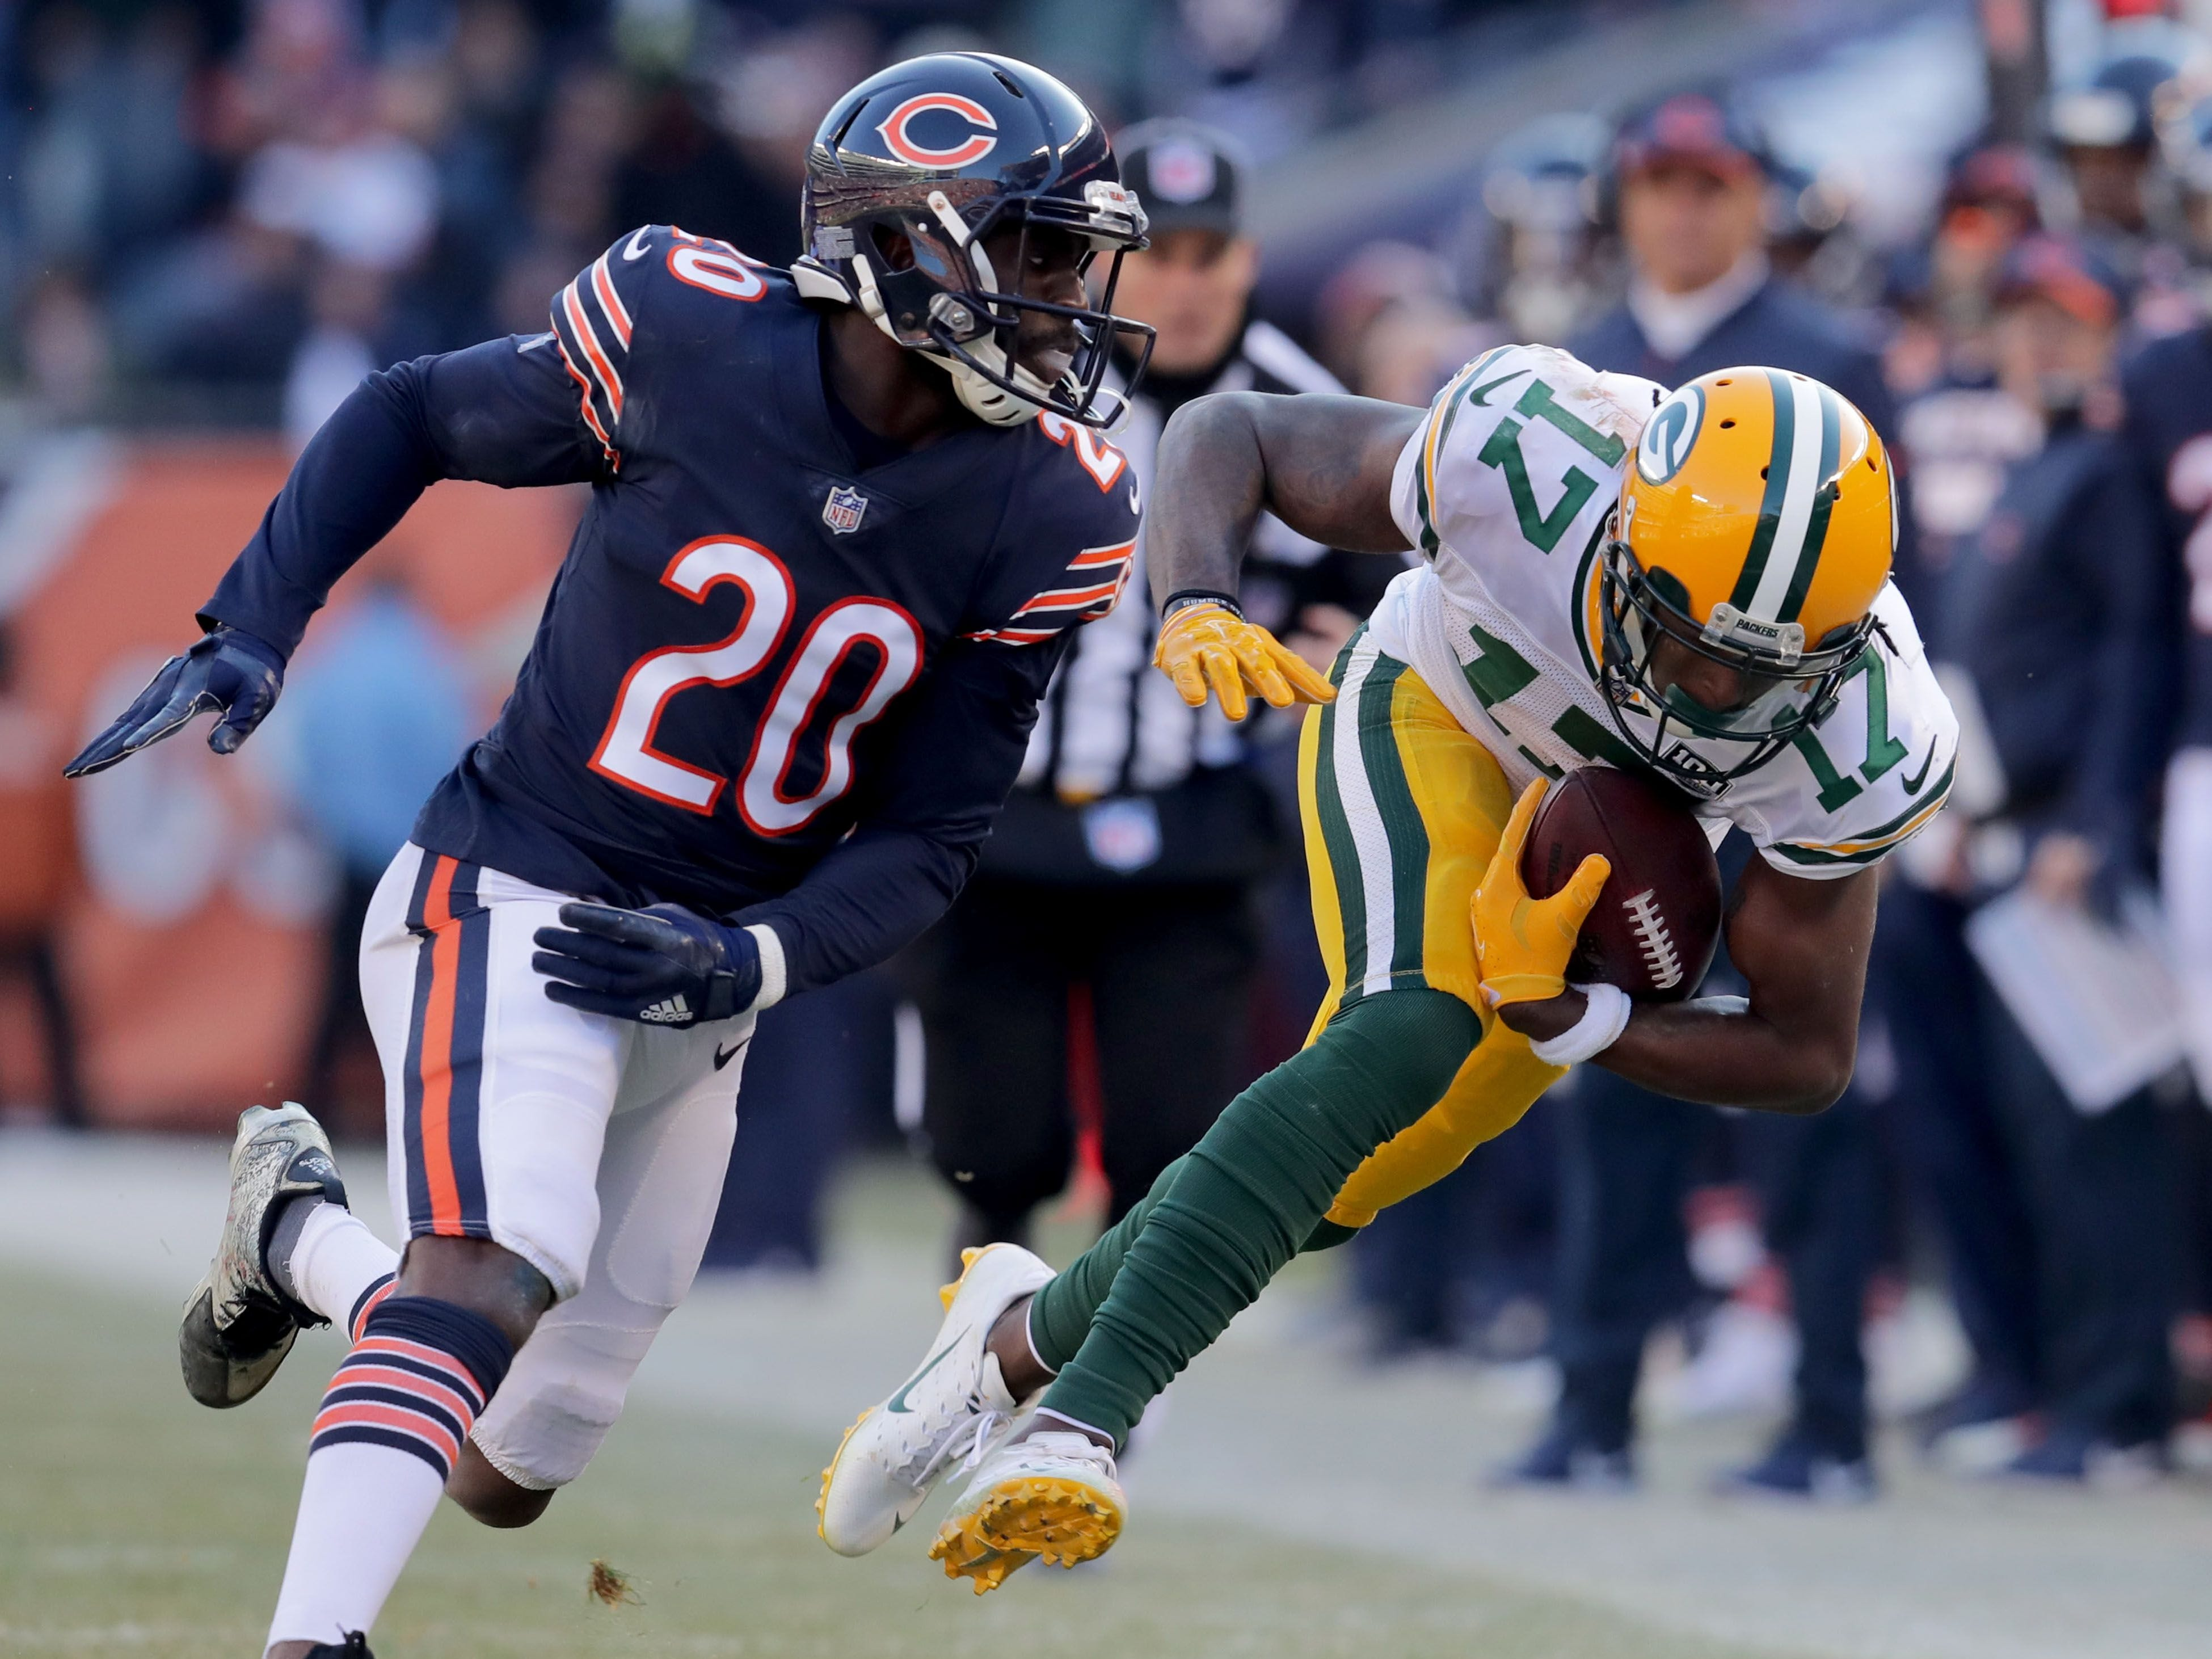 Week 1: Packers at Bears, Soldier Field. 7:20 p.m. CT Sept. 5 (NBC)